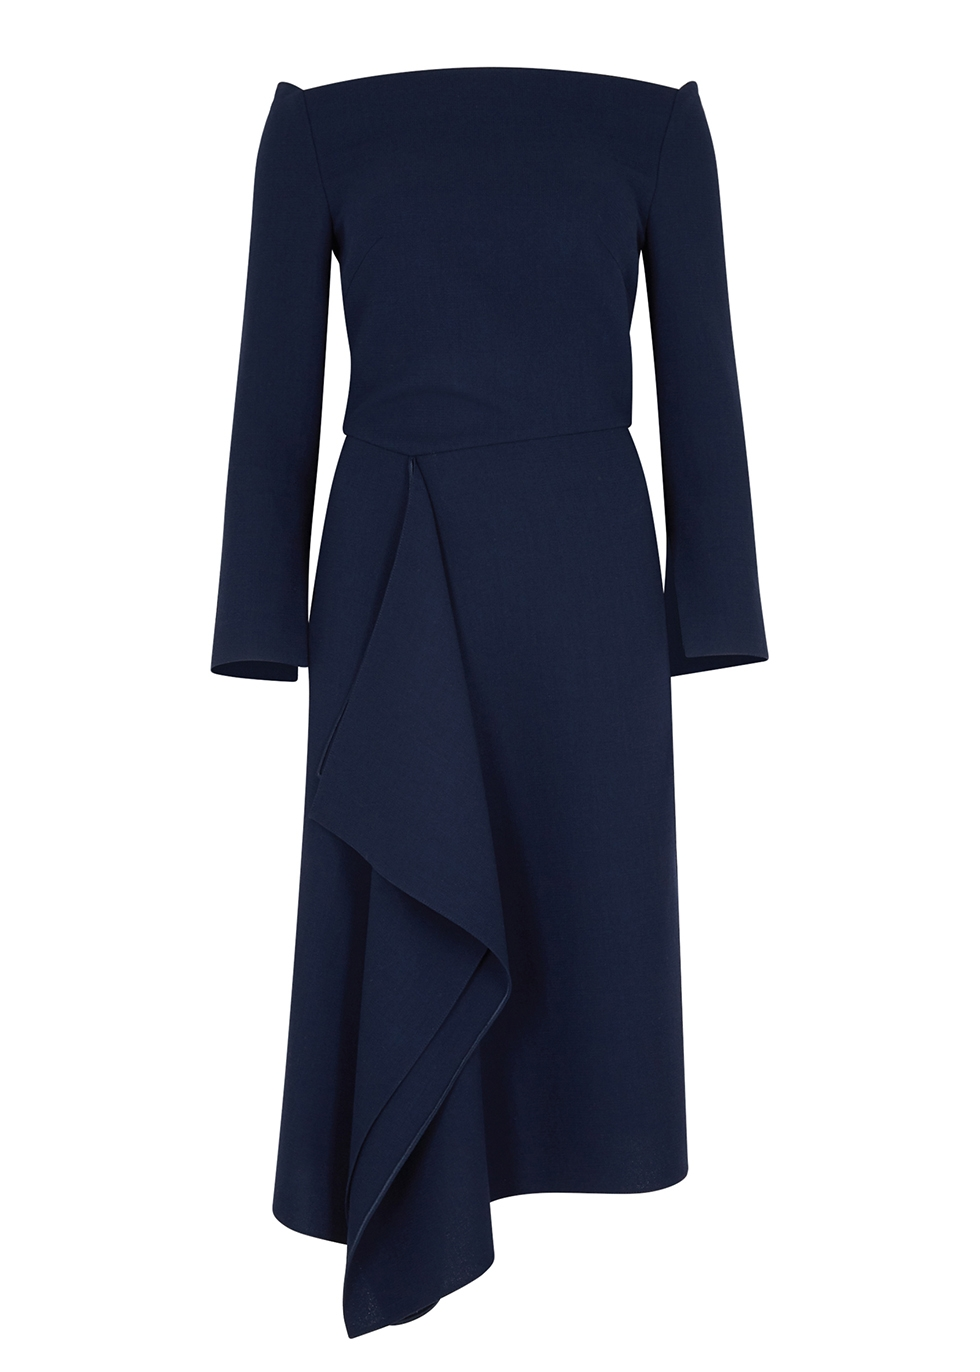 Clover navy draped wool dress - Roland Mouret